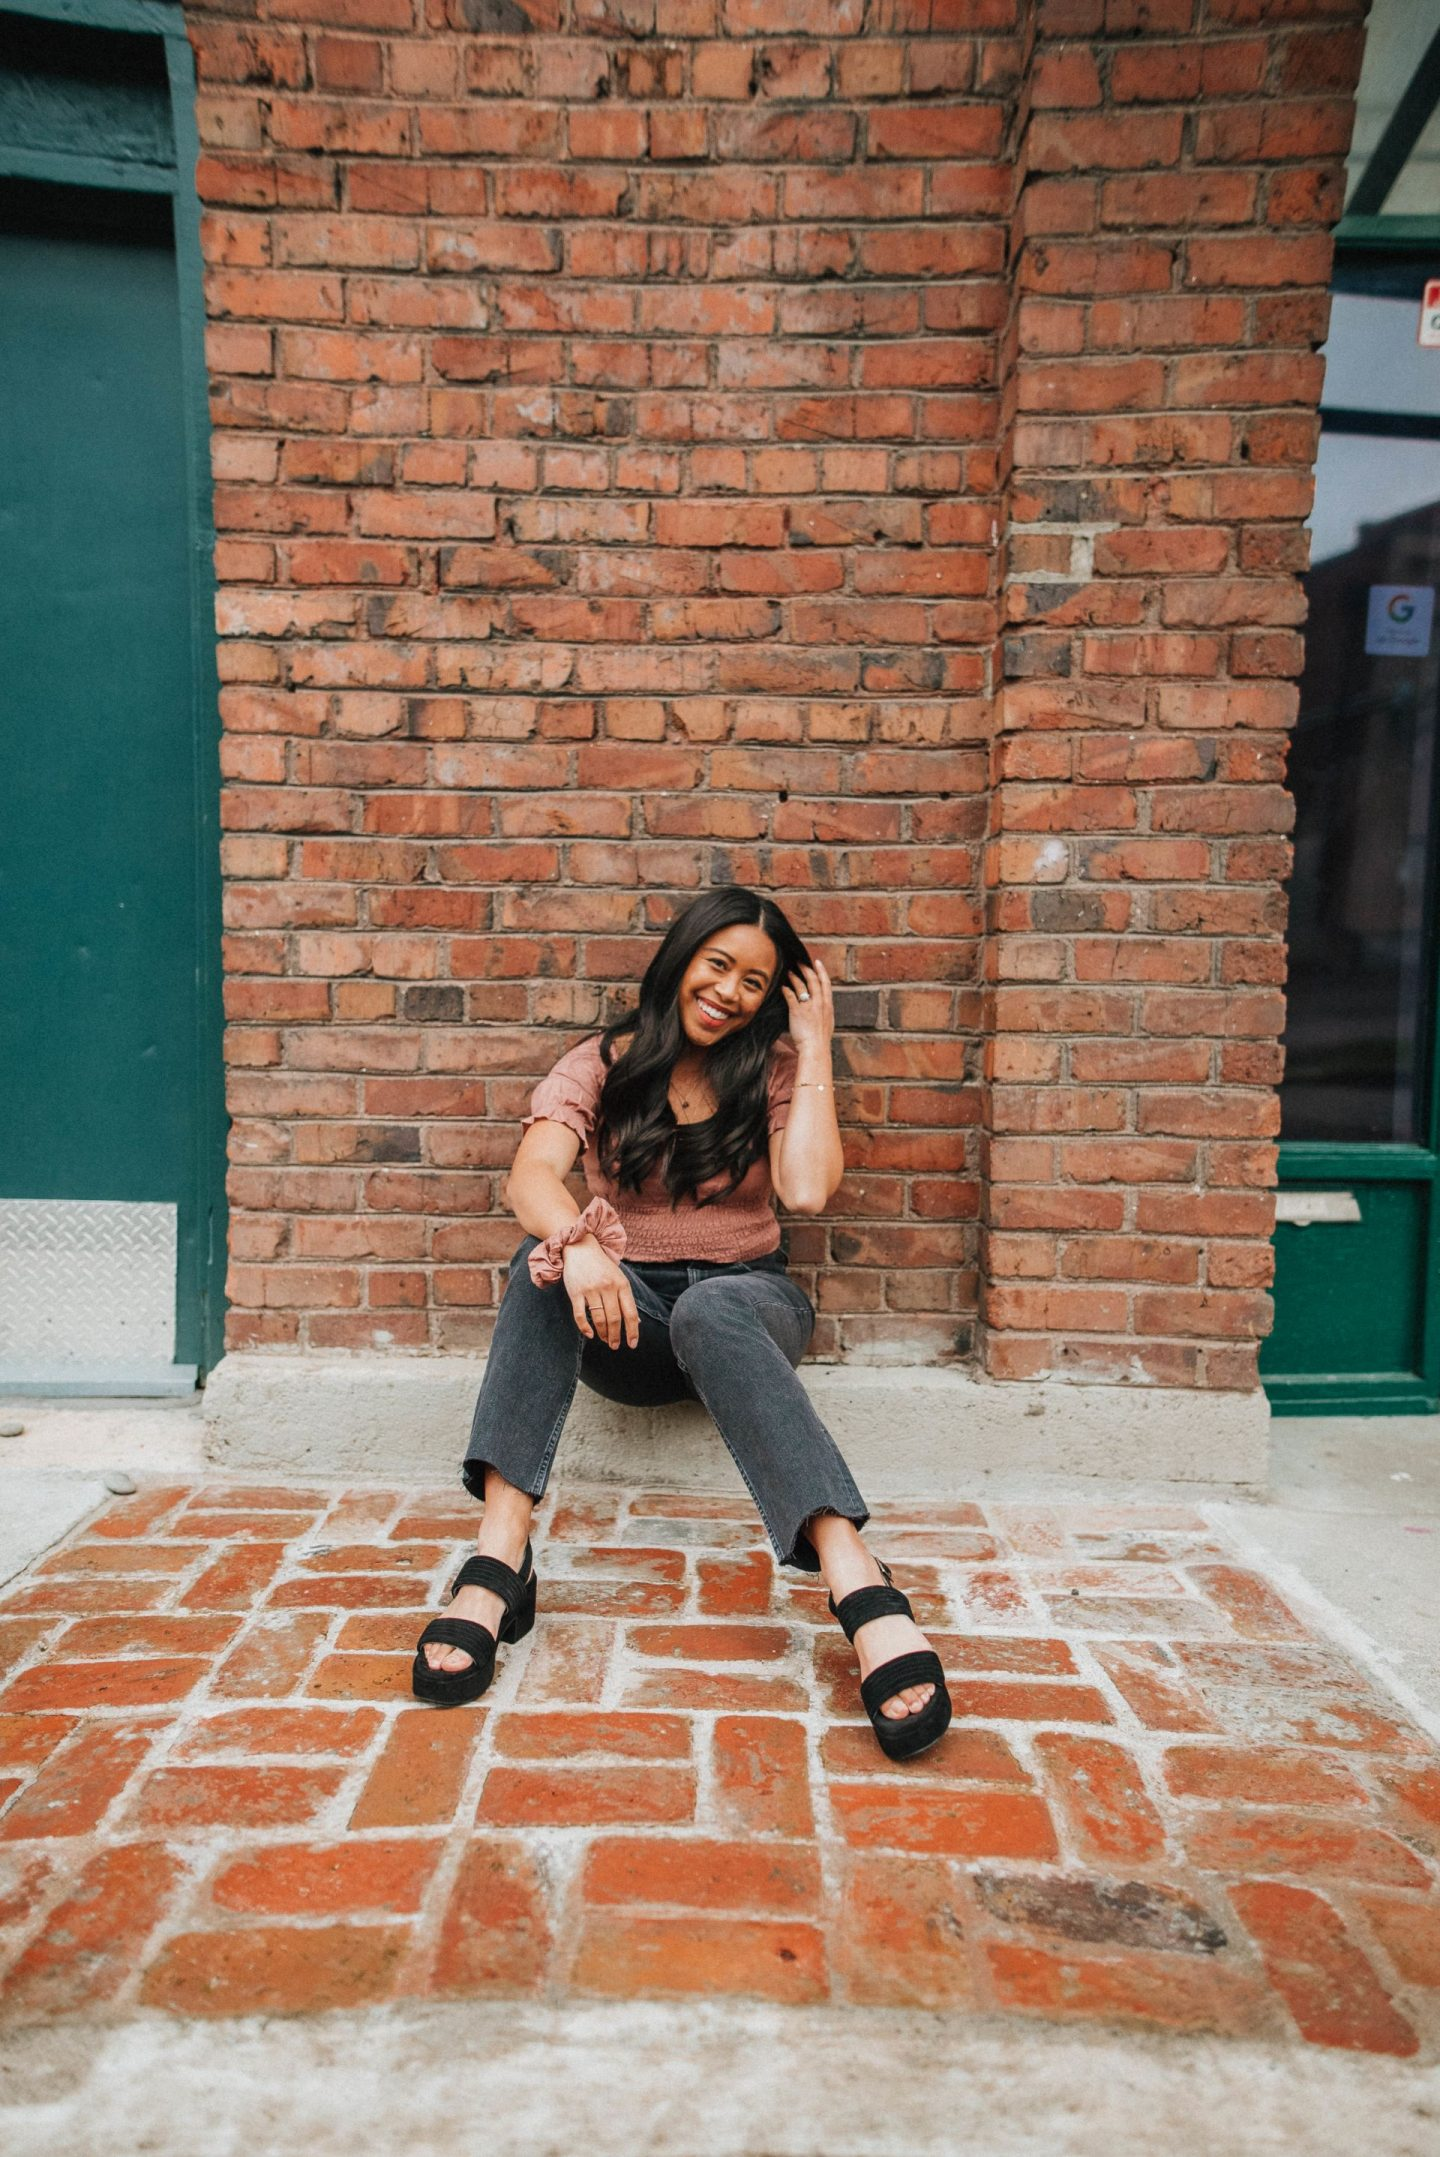 Spring outfits for women - platform sandals outfits women - 2021 platform sandal - 2021 sandal trends - sandals 2021 trends springtime - image from www.emmasedition.com - copyright @emmasedition